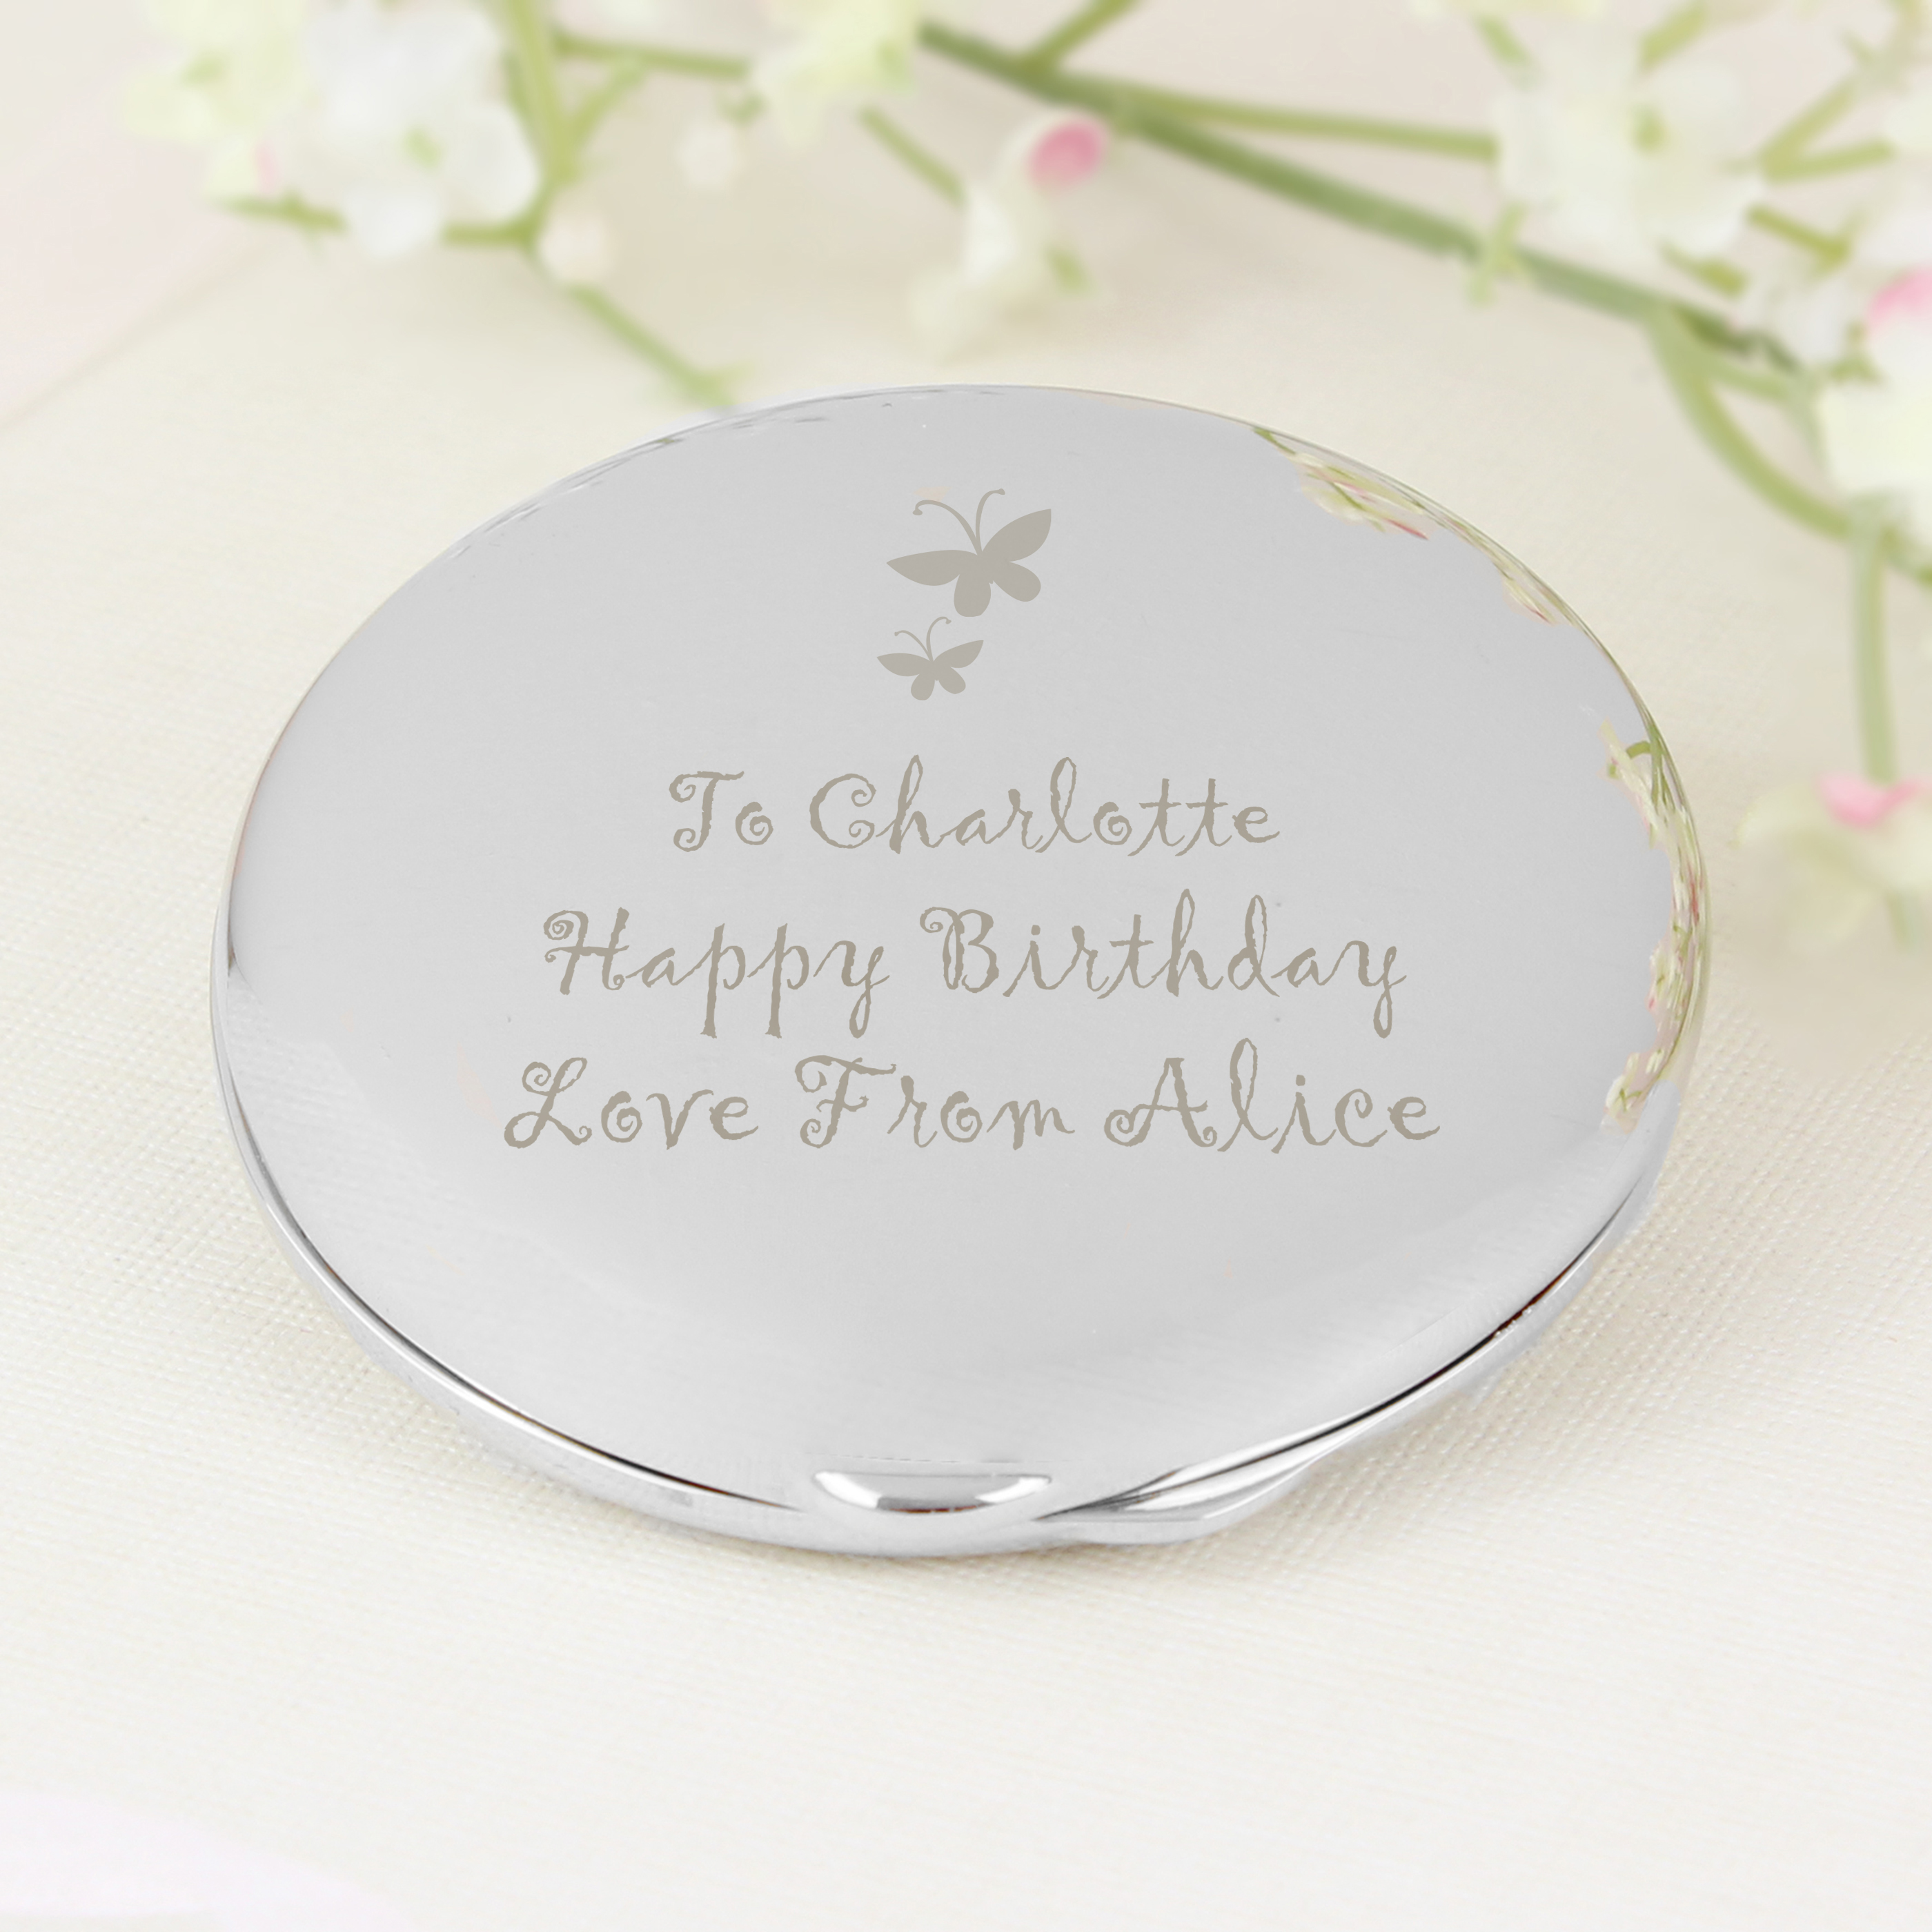 Engraved Round Compact with Butterfly Motif